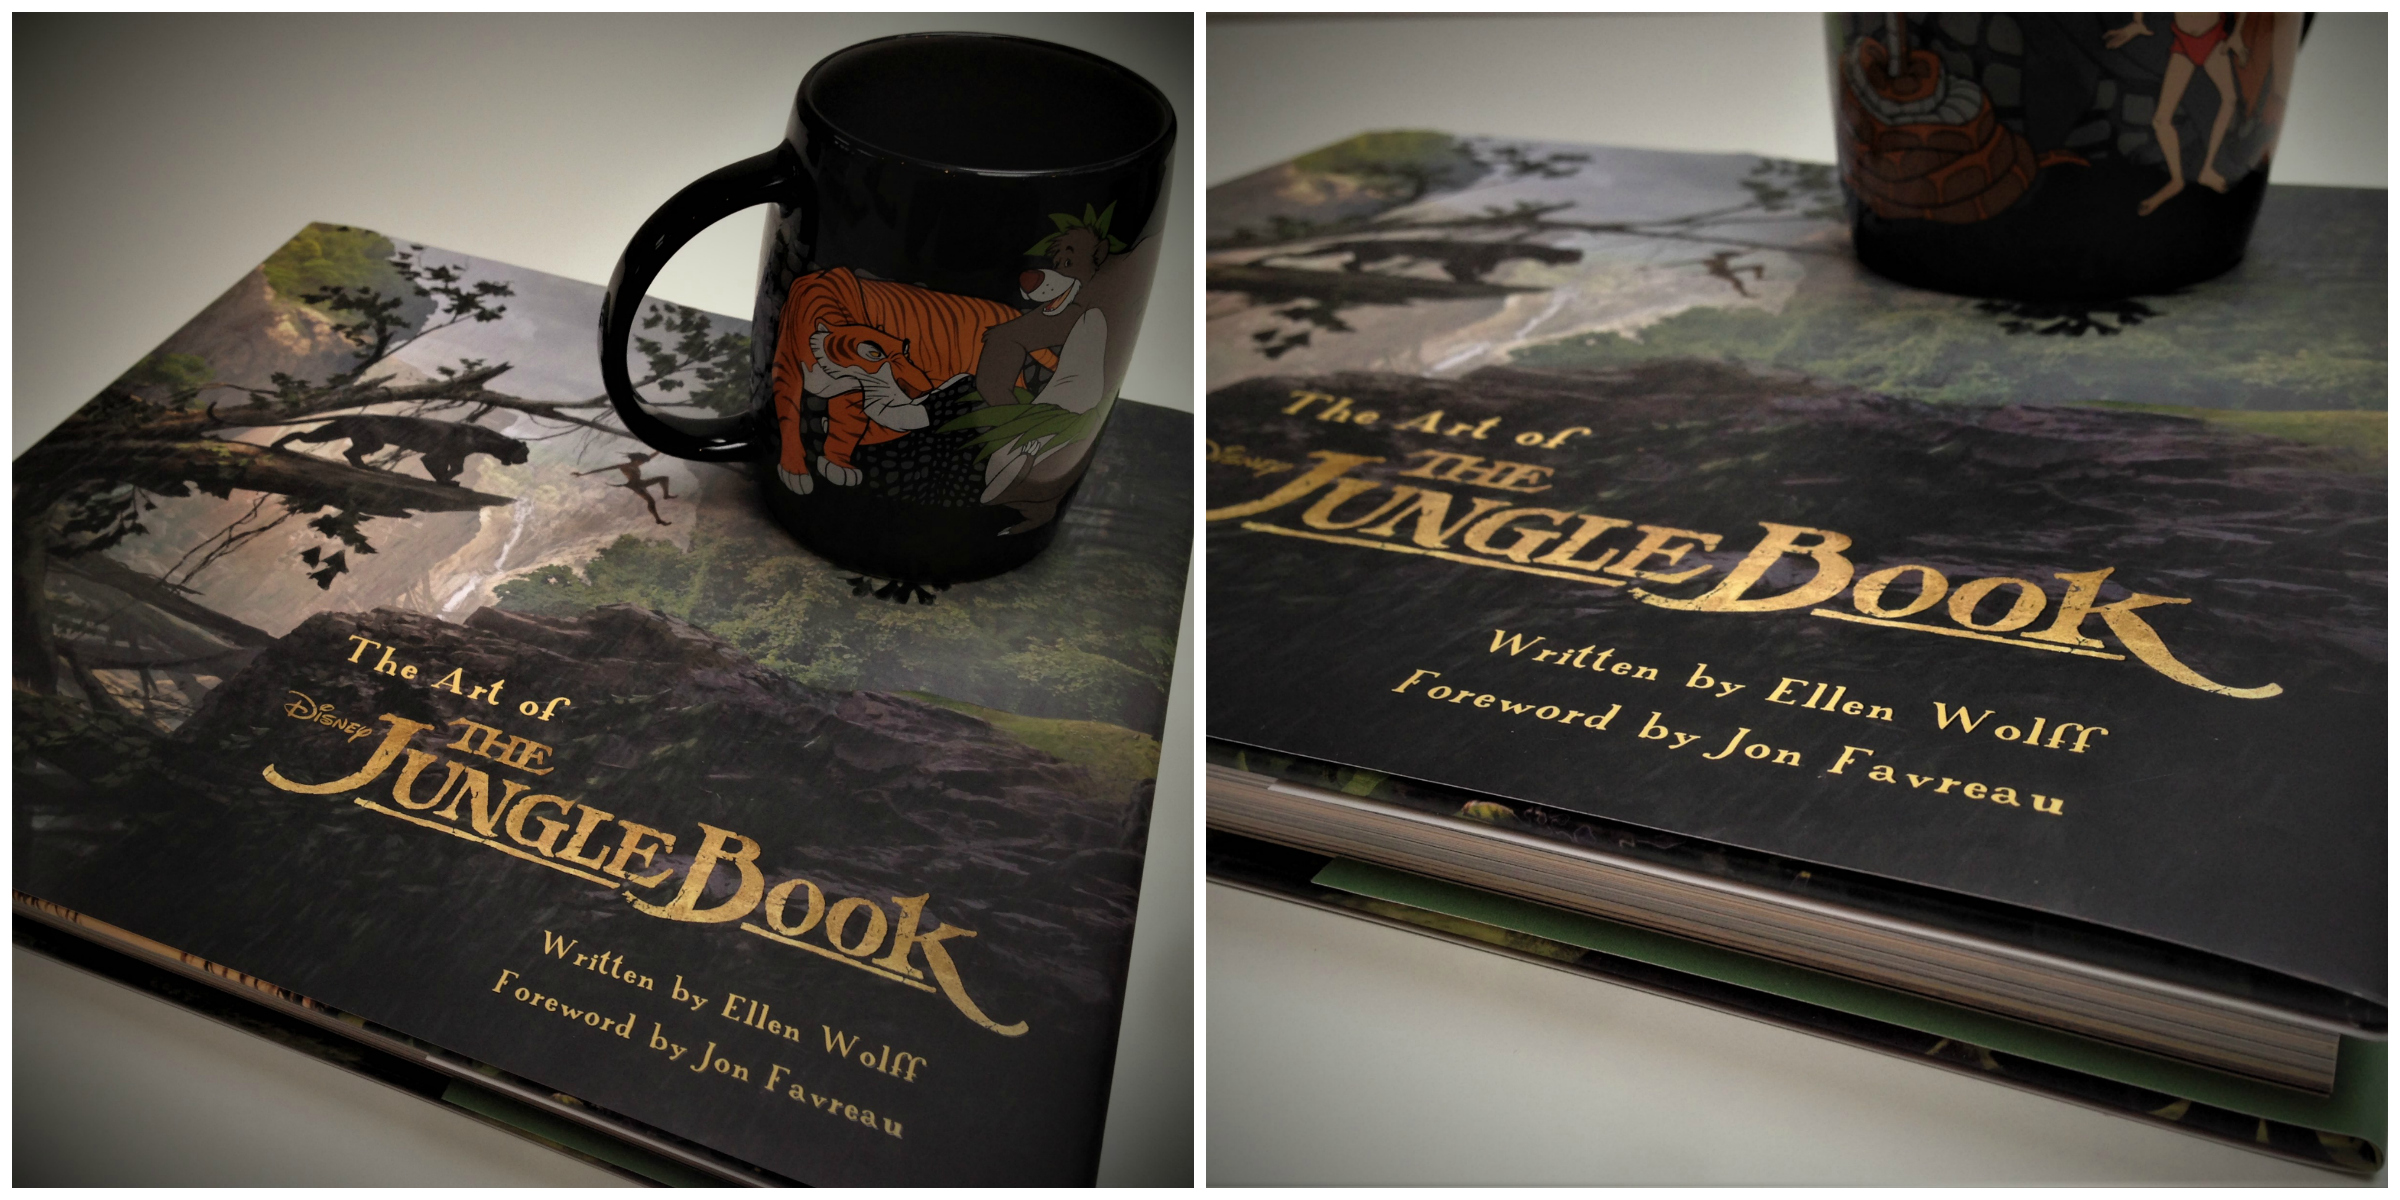 The Art of the JungleBook - Disney - Titan Books - Jon Favreau - Fiktion & Kultur - The Jungle Book - Junglebogen - Elen Wolff (2)